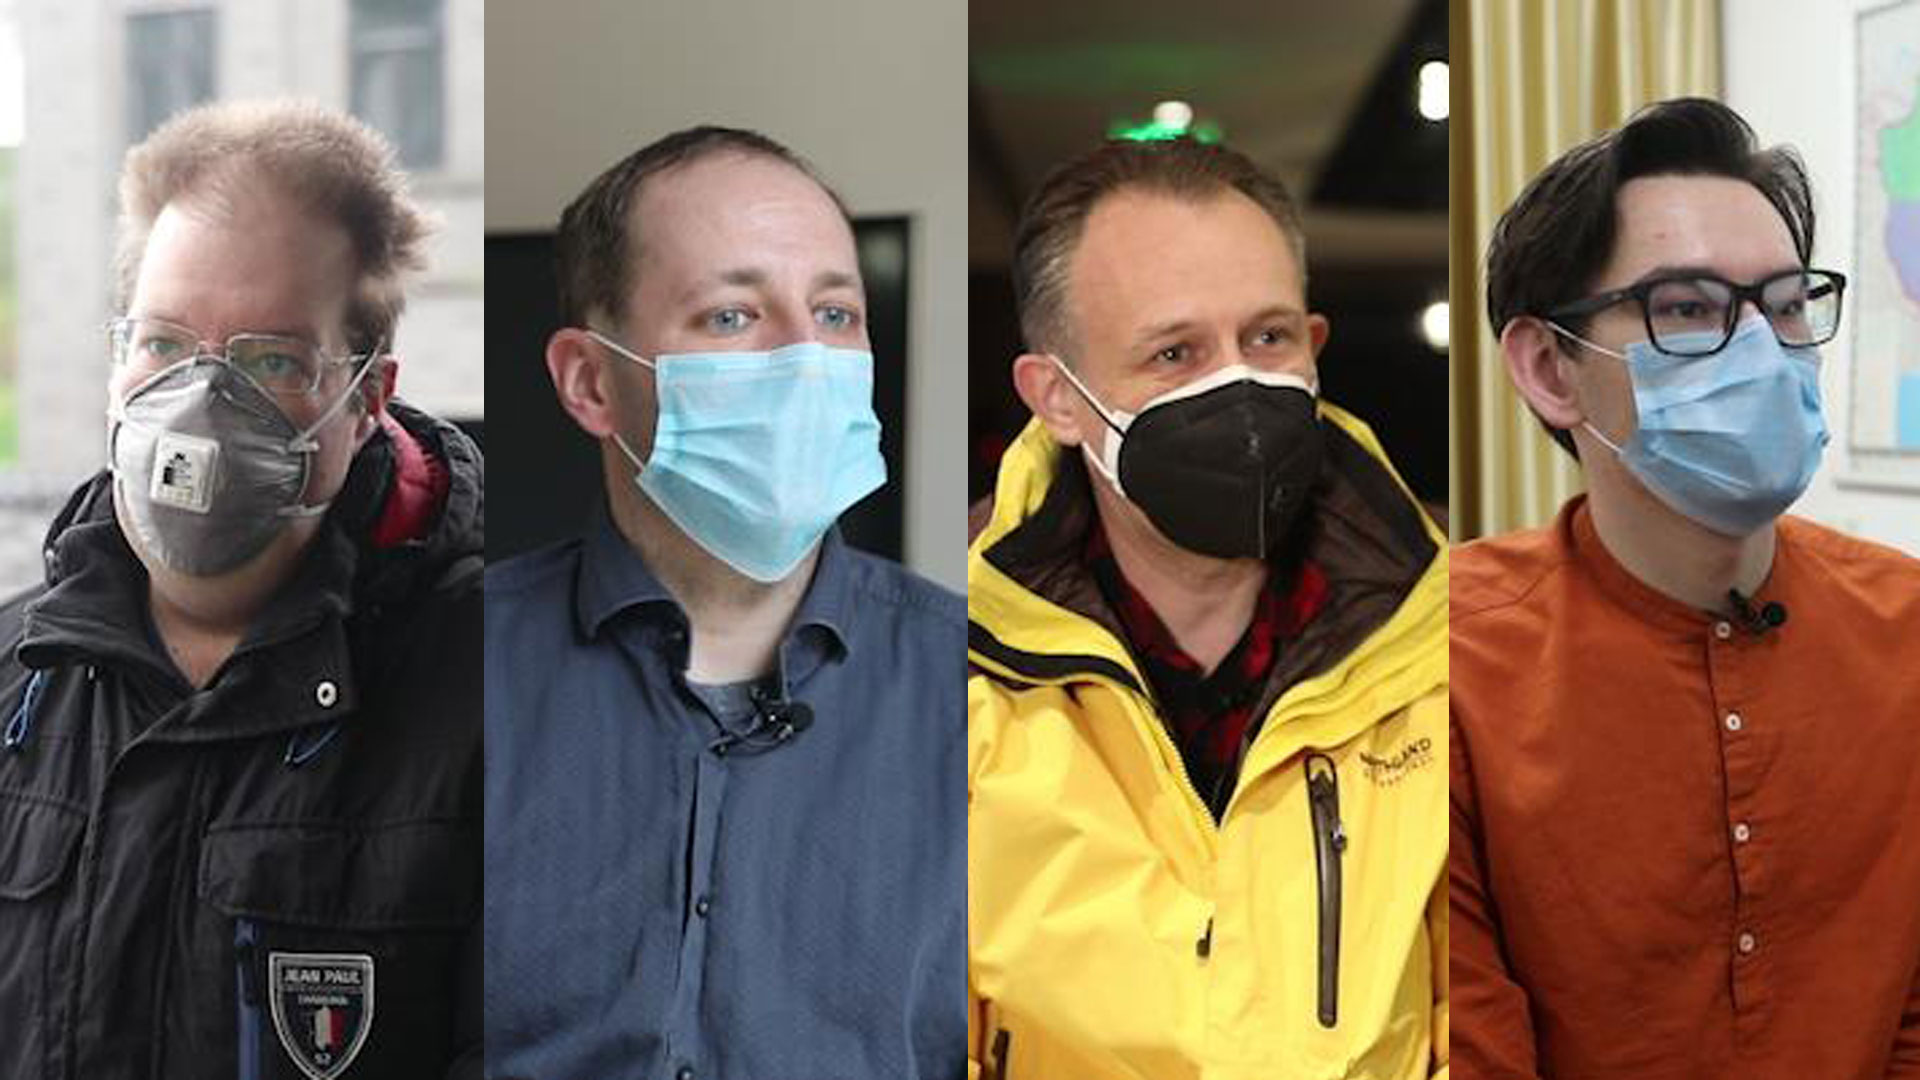 Fact Check in Wuhan: Foreigners staying in Wuhan amid outbreak